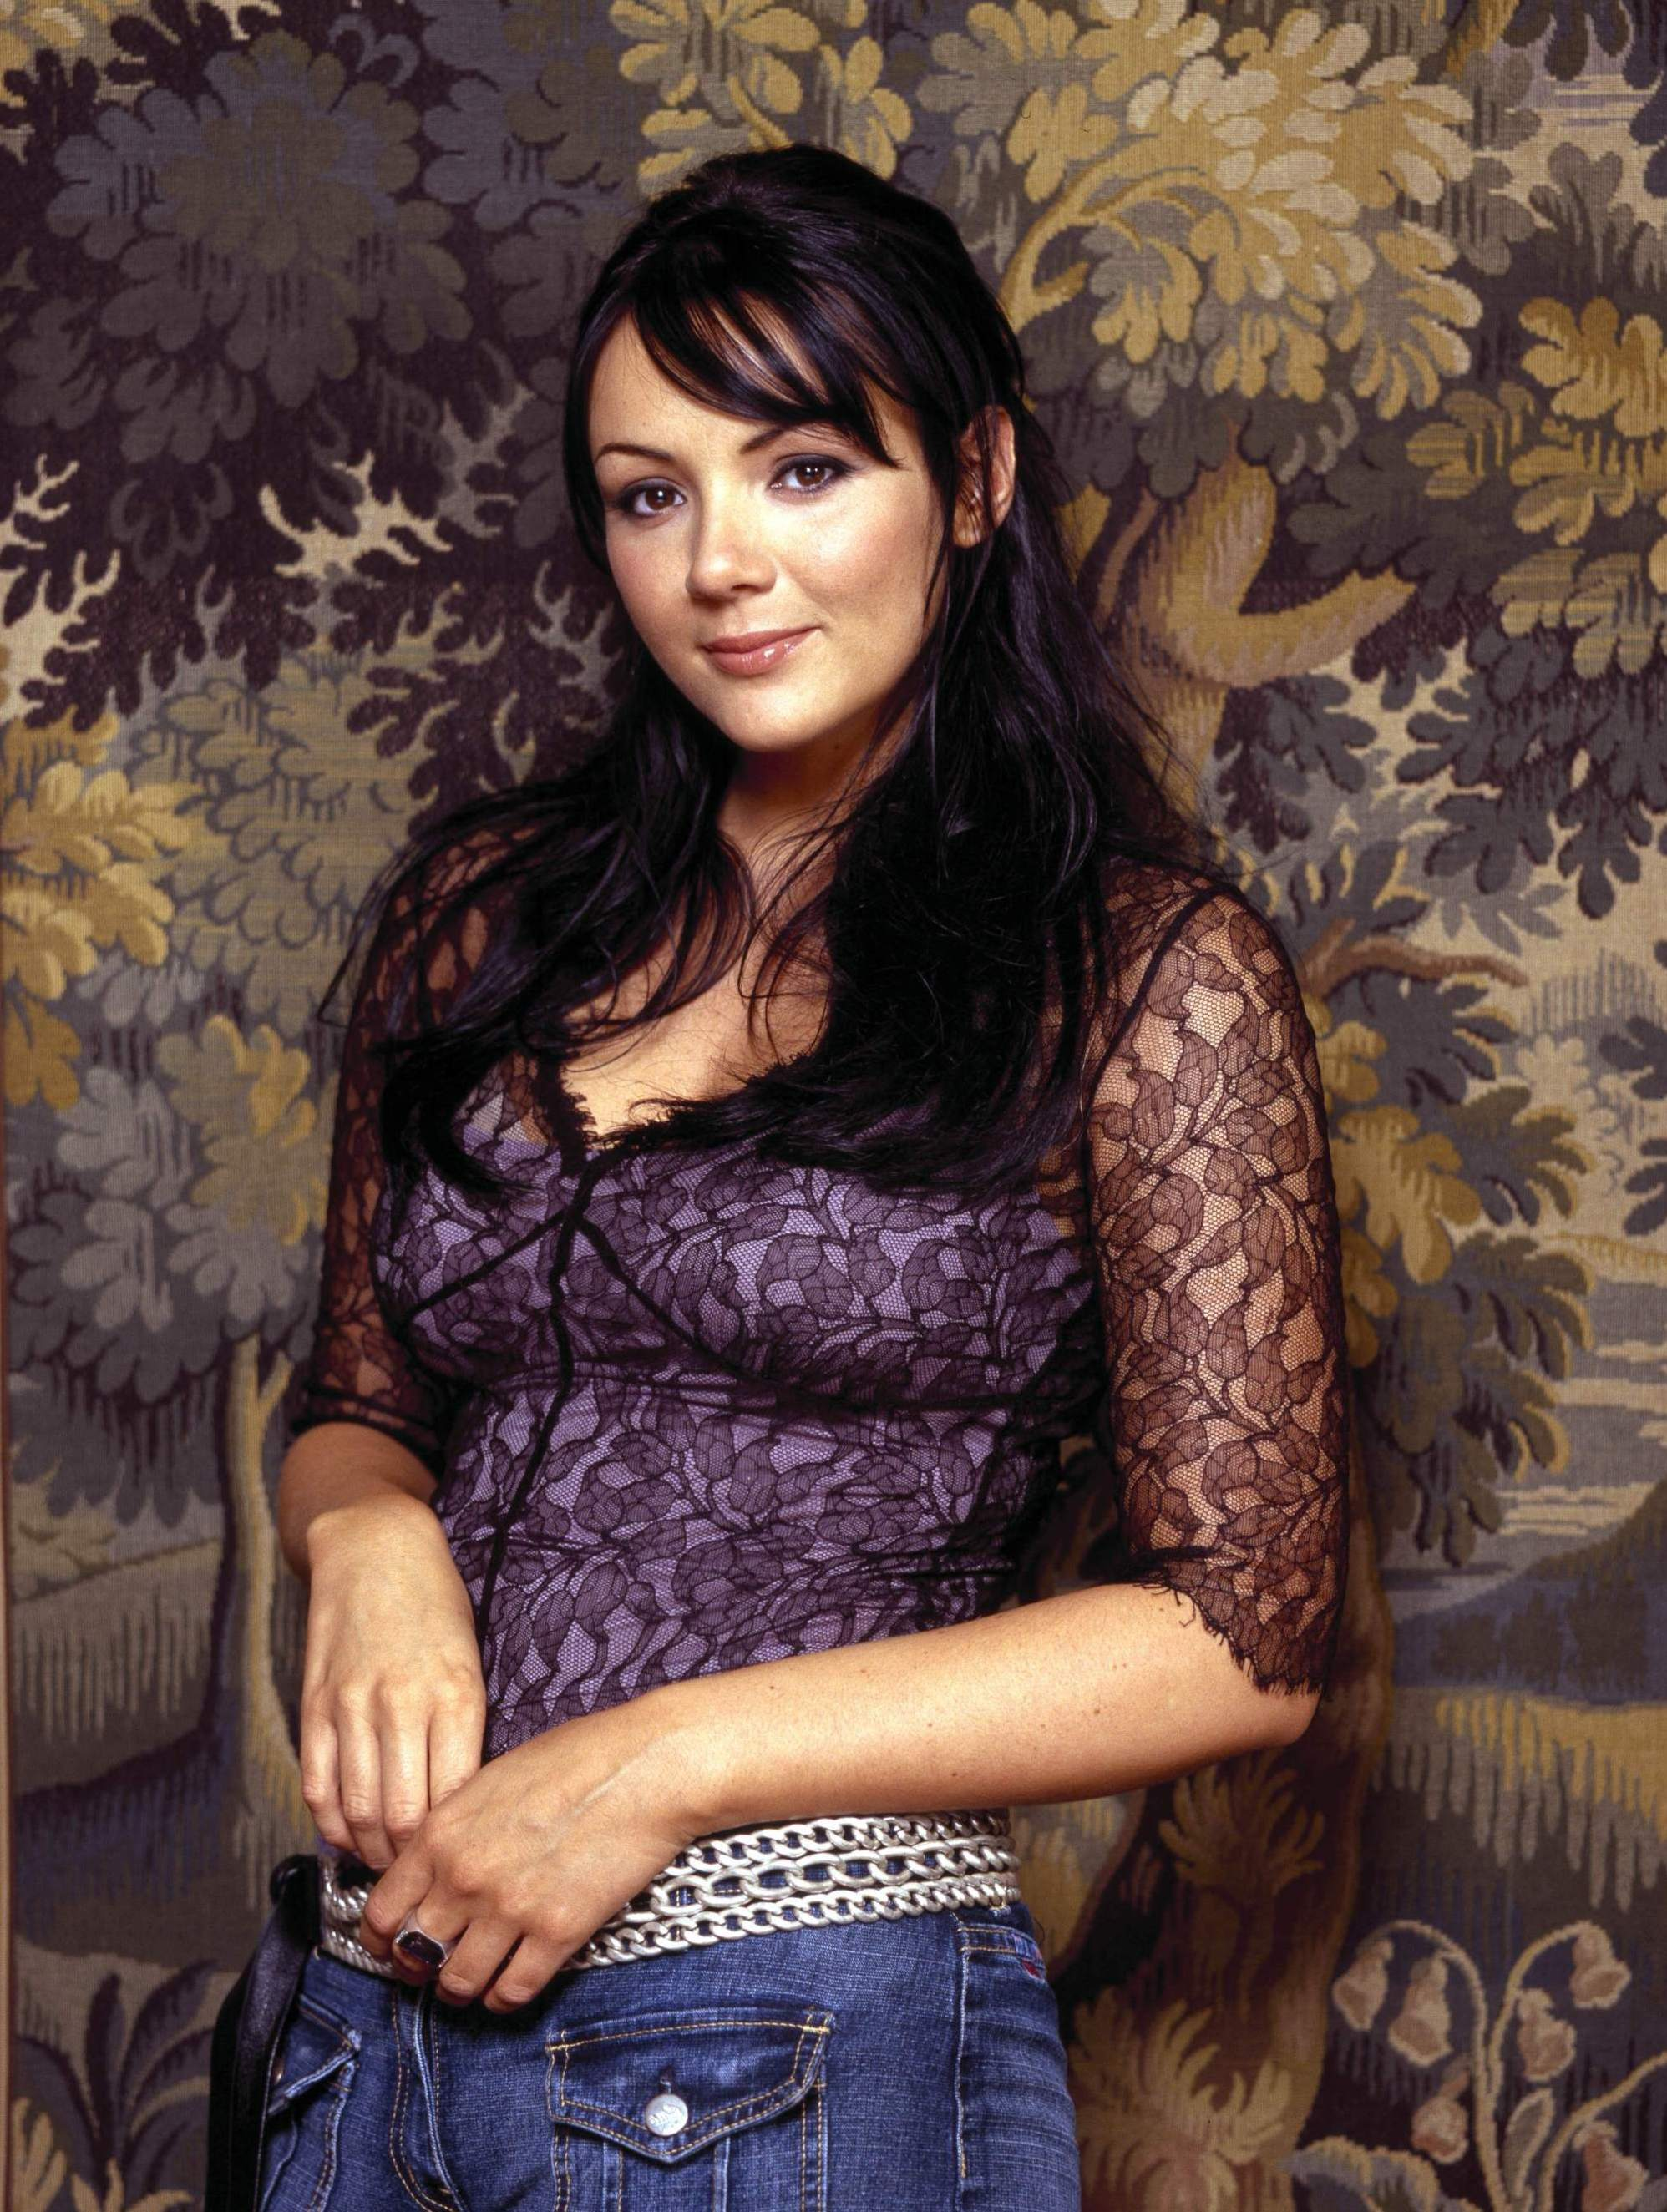 martine mccutcheon twitter